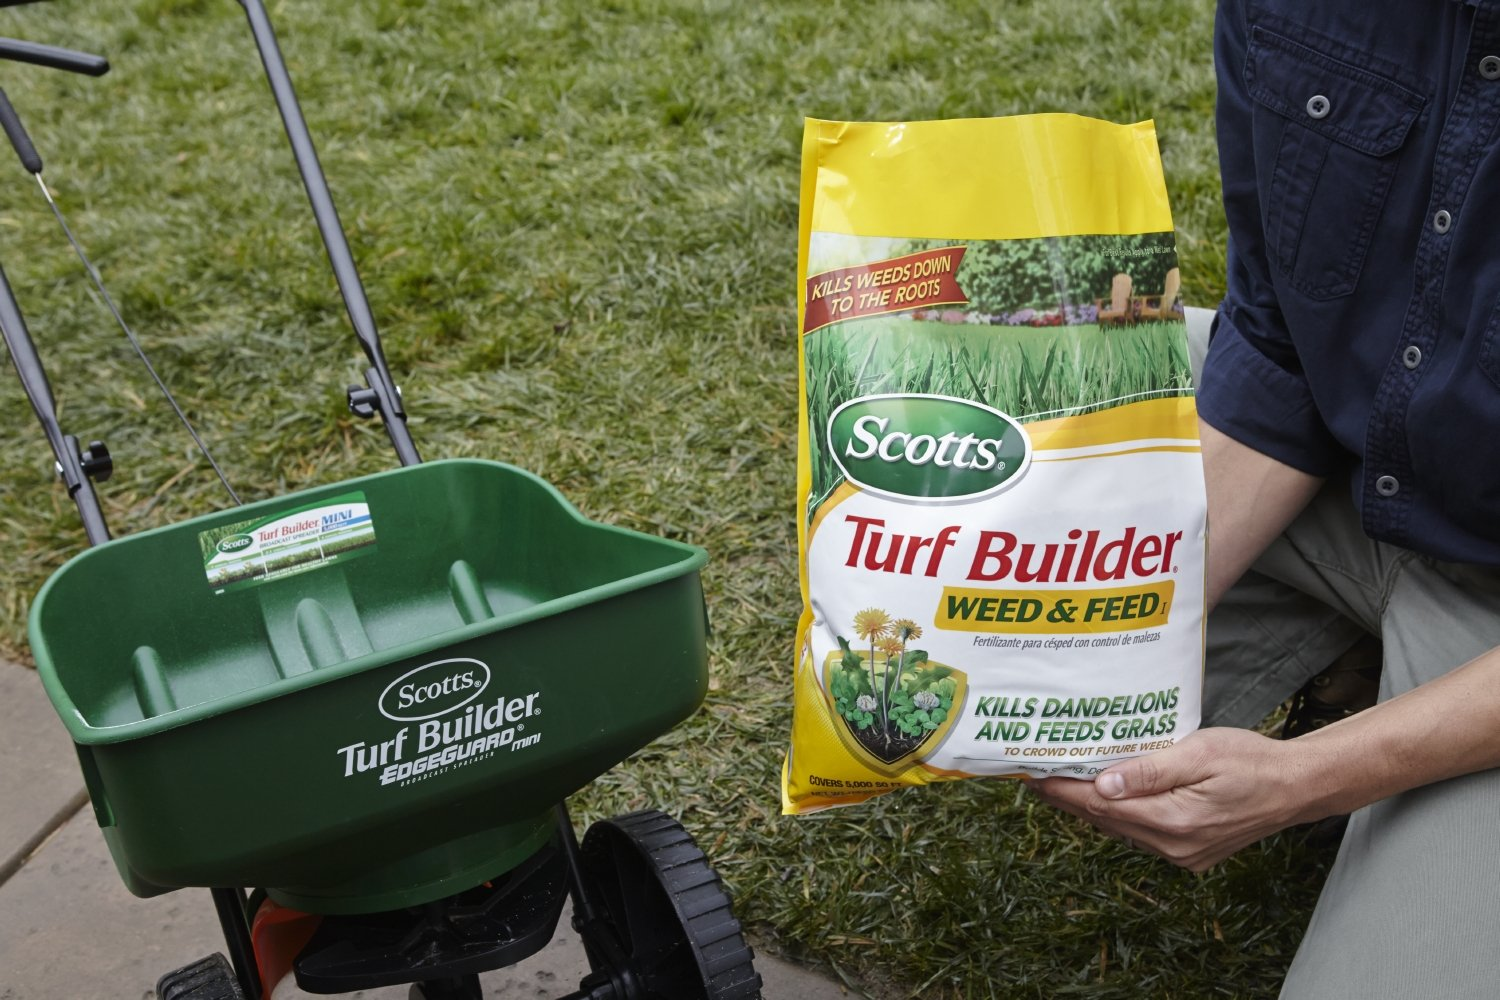 Amazon.com : Scotts Turf Builder Lawn Food - Weed and Feed, (Lawn Fertilizer plus Dandelion & Weed Killer) (Not Sold in Pinellas County, FL), 5, ...